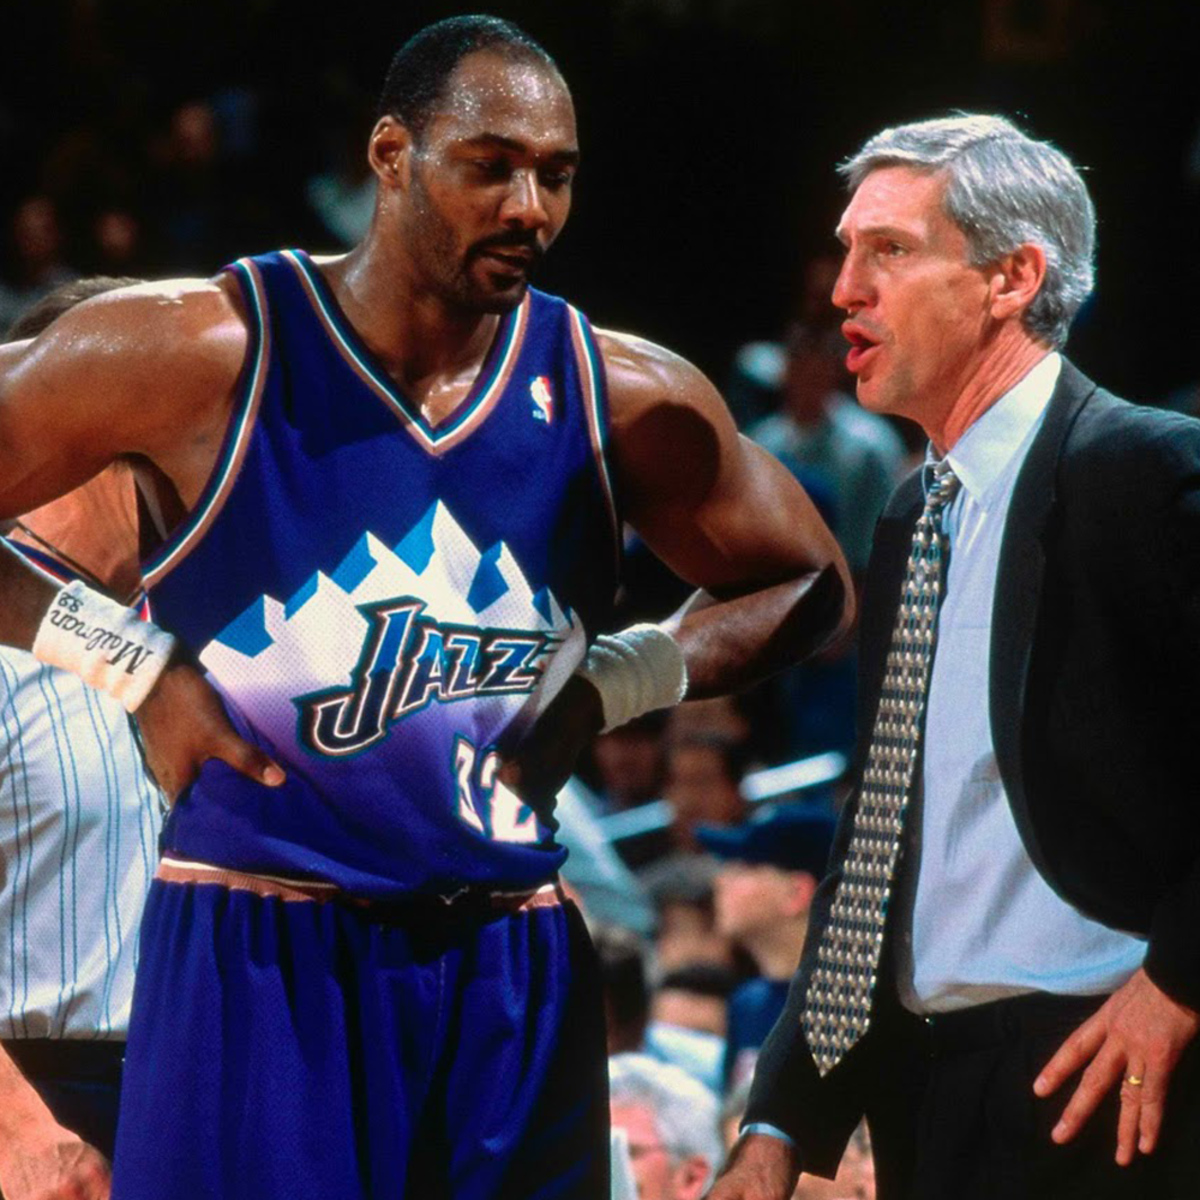 Karl Malone discussing matters with Utah Jazz coach.